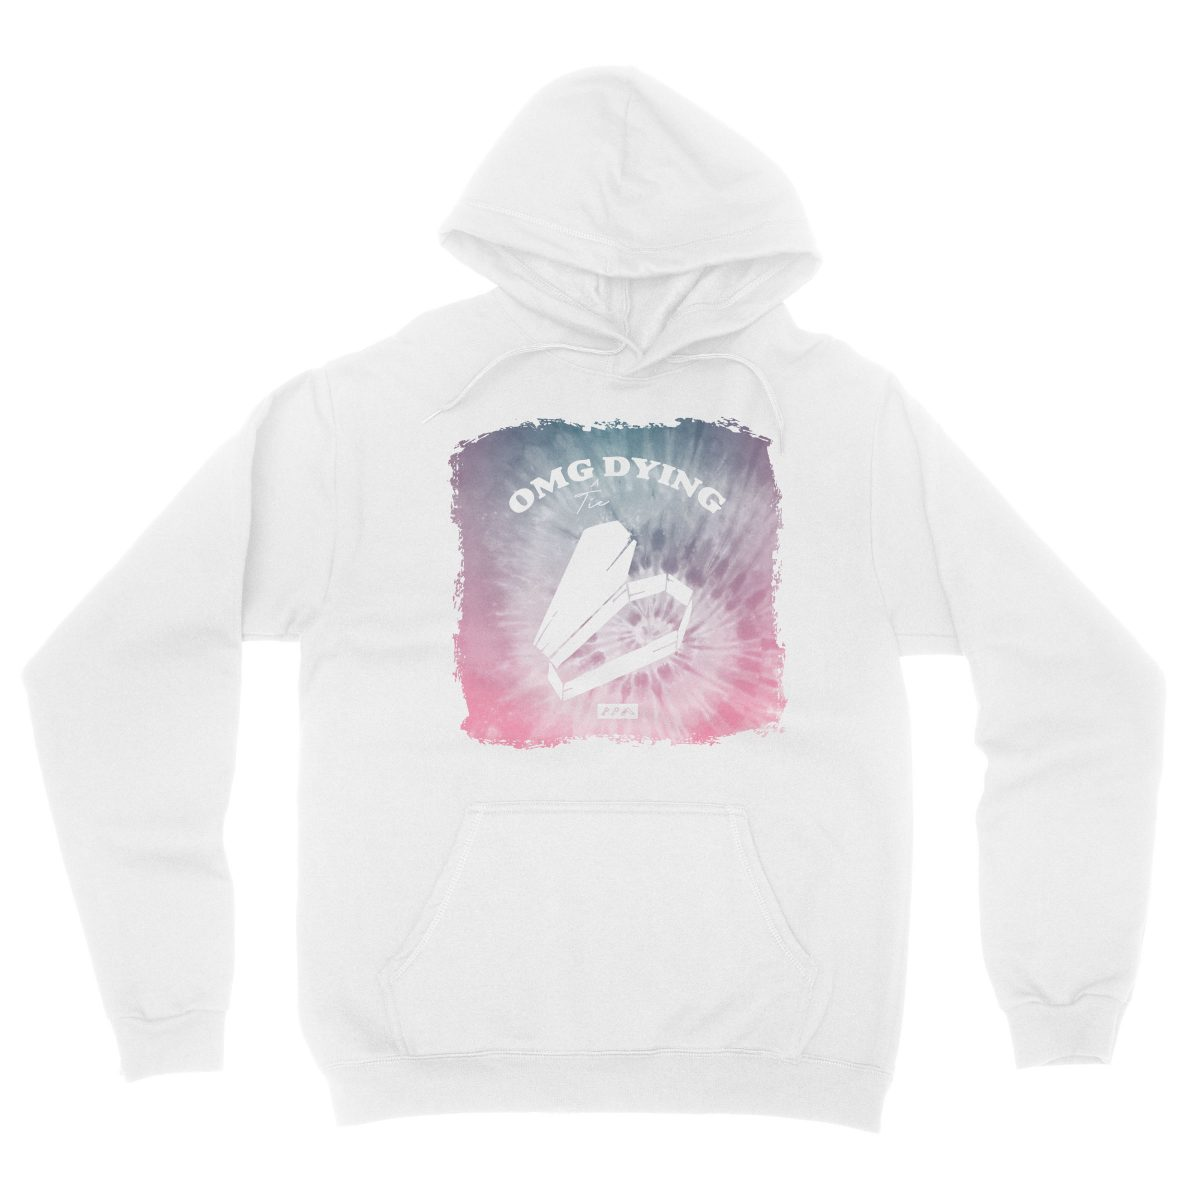 OMG DYING tie dye music festival funny hoodies in white